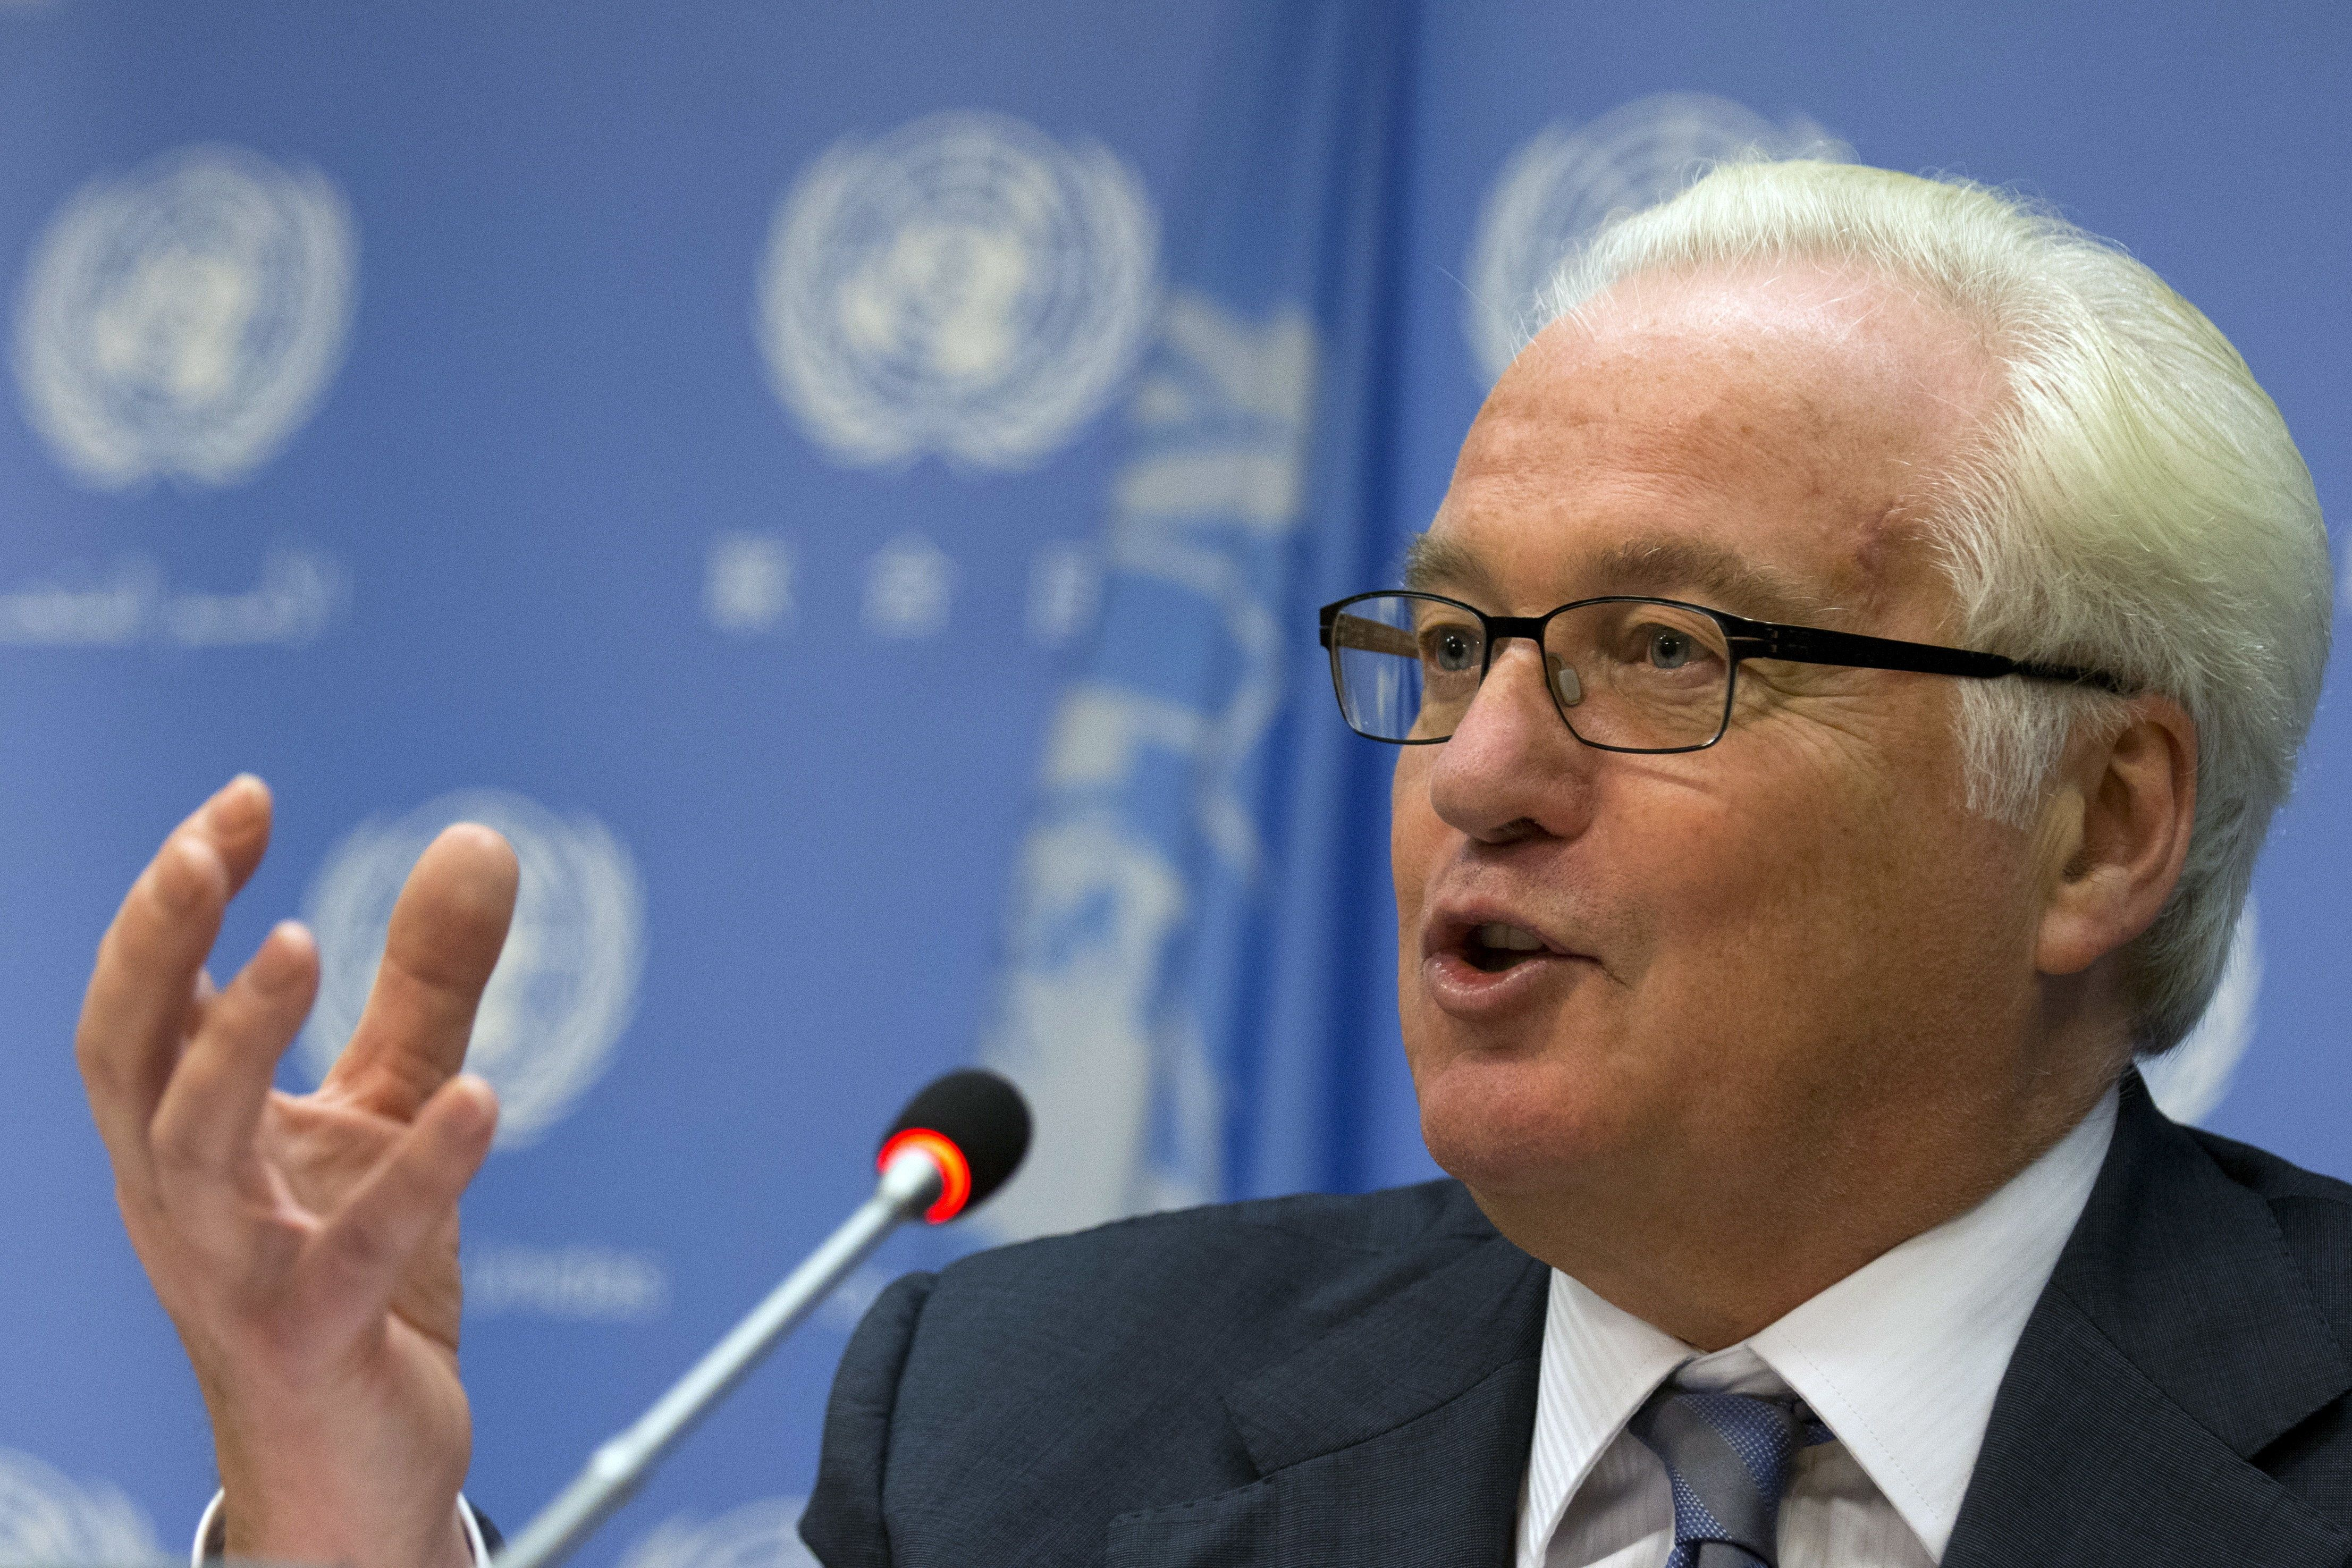 Russian ambassador to the United Nations Vitaly Churkin speaks during a news conference at the U.N. headquarters in New York September 2, 2015. Russia will be taking its turn at the rotating presidency of the UN Security Council during the month of September.  REUTERS/Brendan McDermid